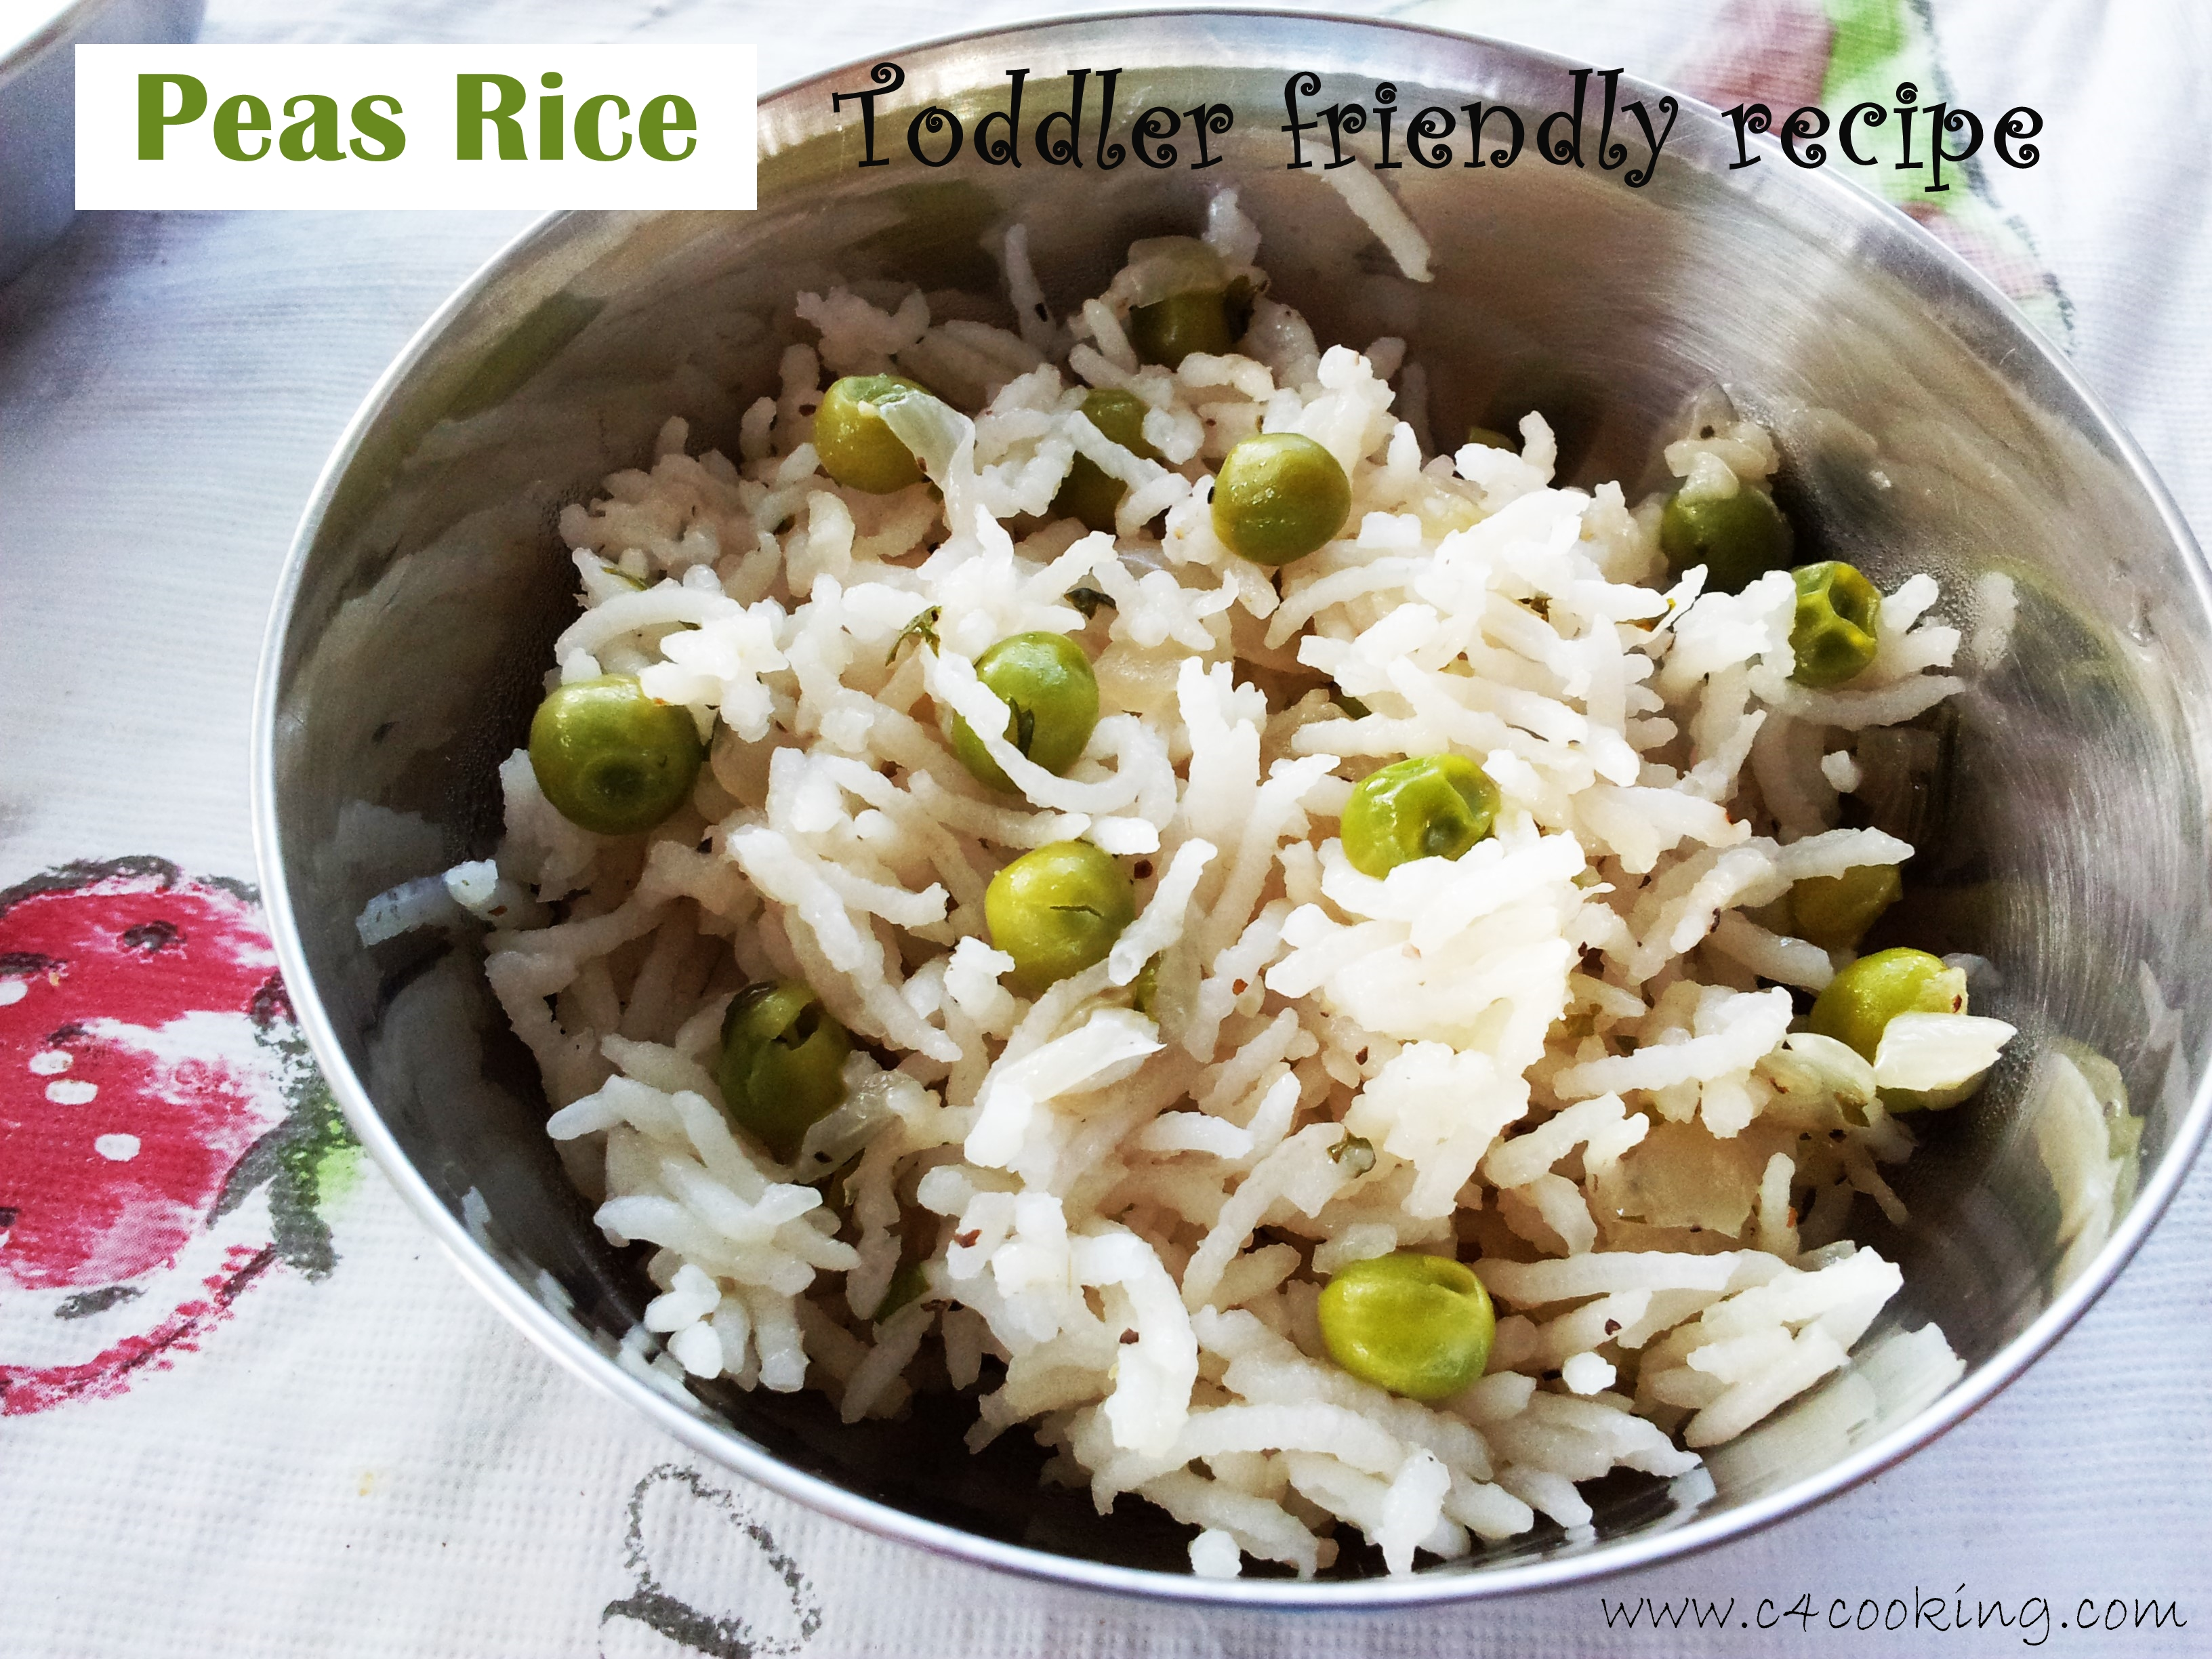 Peas rice recipe - Toddler recipe